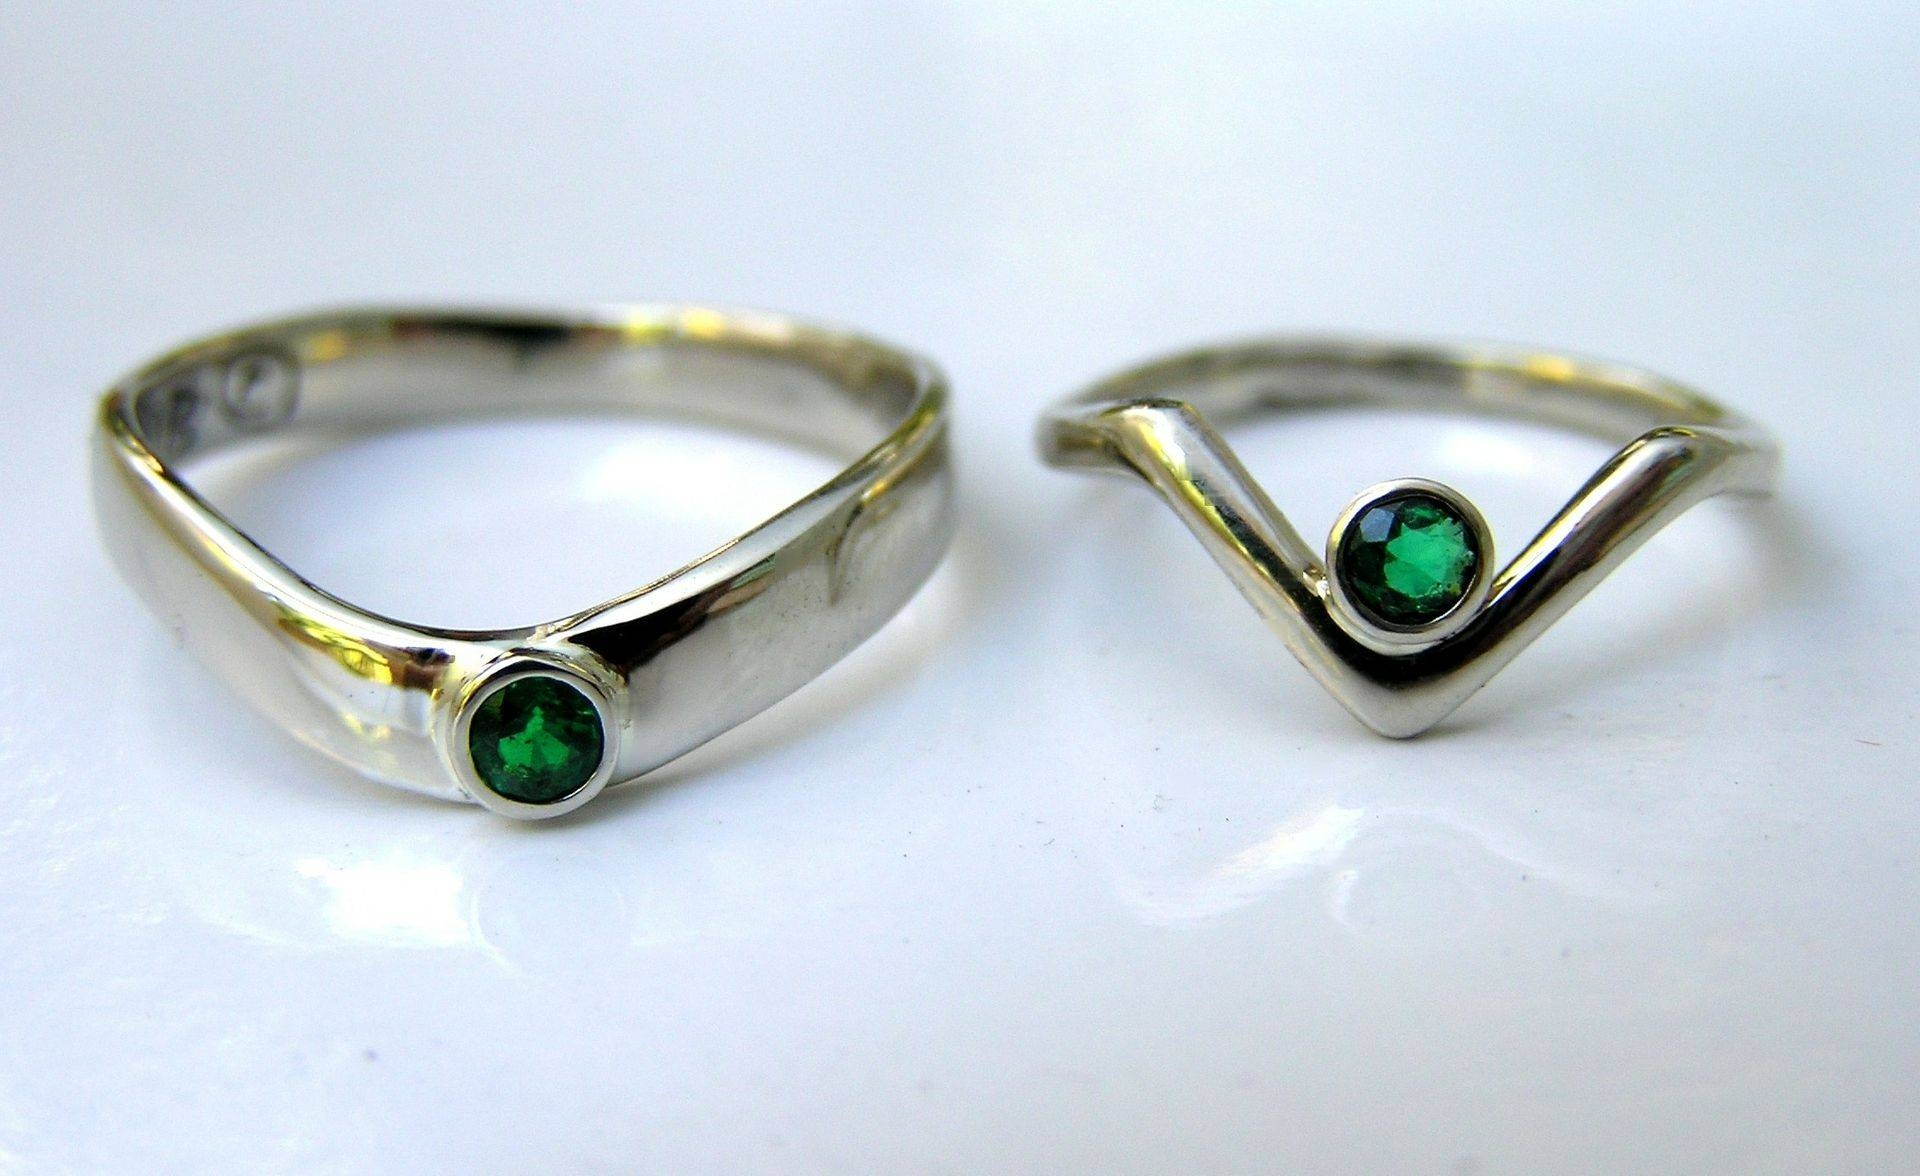 Hand Crafted His Hers Emerald Anniversary Rings – Handmade Custom Regarding Most Recent Emerald Anniversary Rings (Gallery 25 of 25)